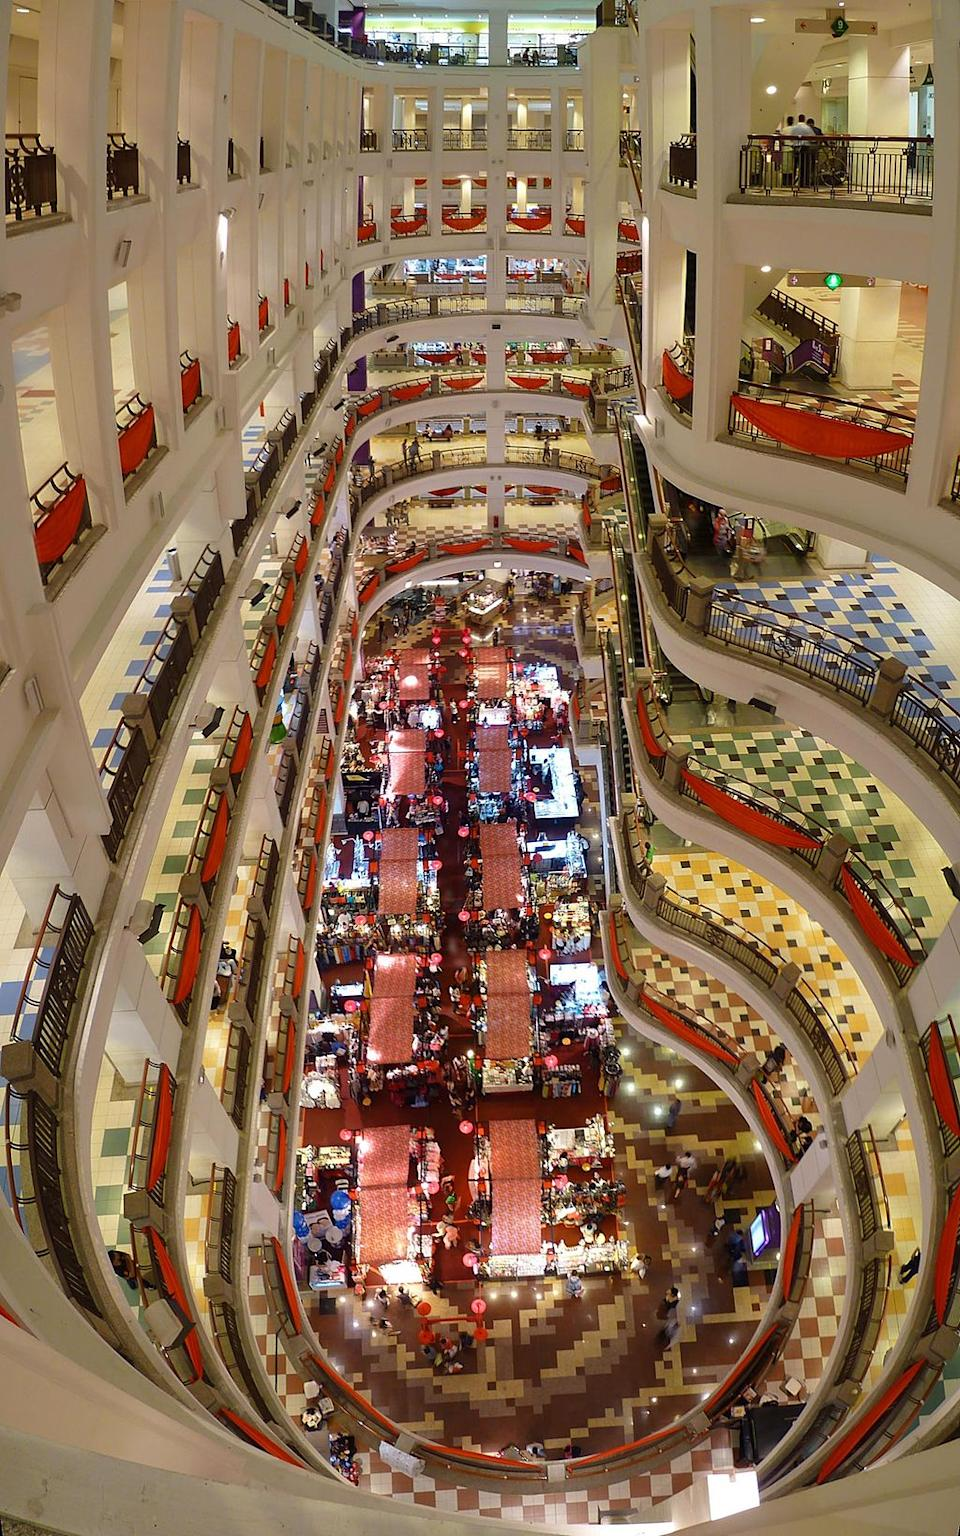 <p><b>14. SM Megamall</b></p> <p> Mandaluyong, Philippines</p> <p>Gross Leasable Area (GLA): 348,056 sqm</p> <p><b>15. Berjaya Times Square (Pictured left)</b></p> <p> Kuala Lumpur, Malaysia</p> <p>Gross Leasable Area (GLA): 320,000 sqm</p> <p>Photo: By Cmglee (Own work) [CC-BY-SA-3.0 (http://creativecommons.org/licenses/by-sa/3.0)], via Wikimedia Commons</p>